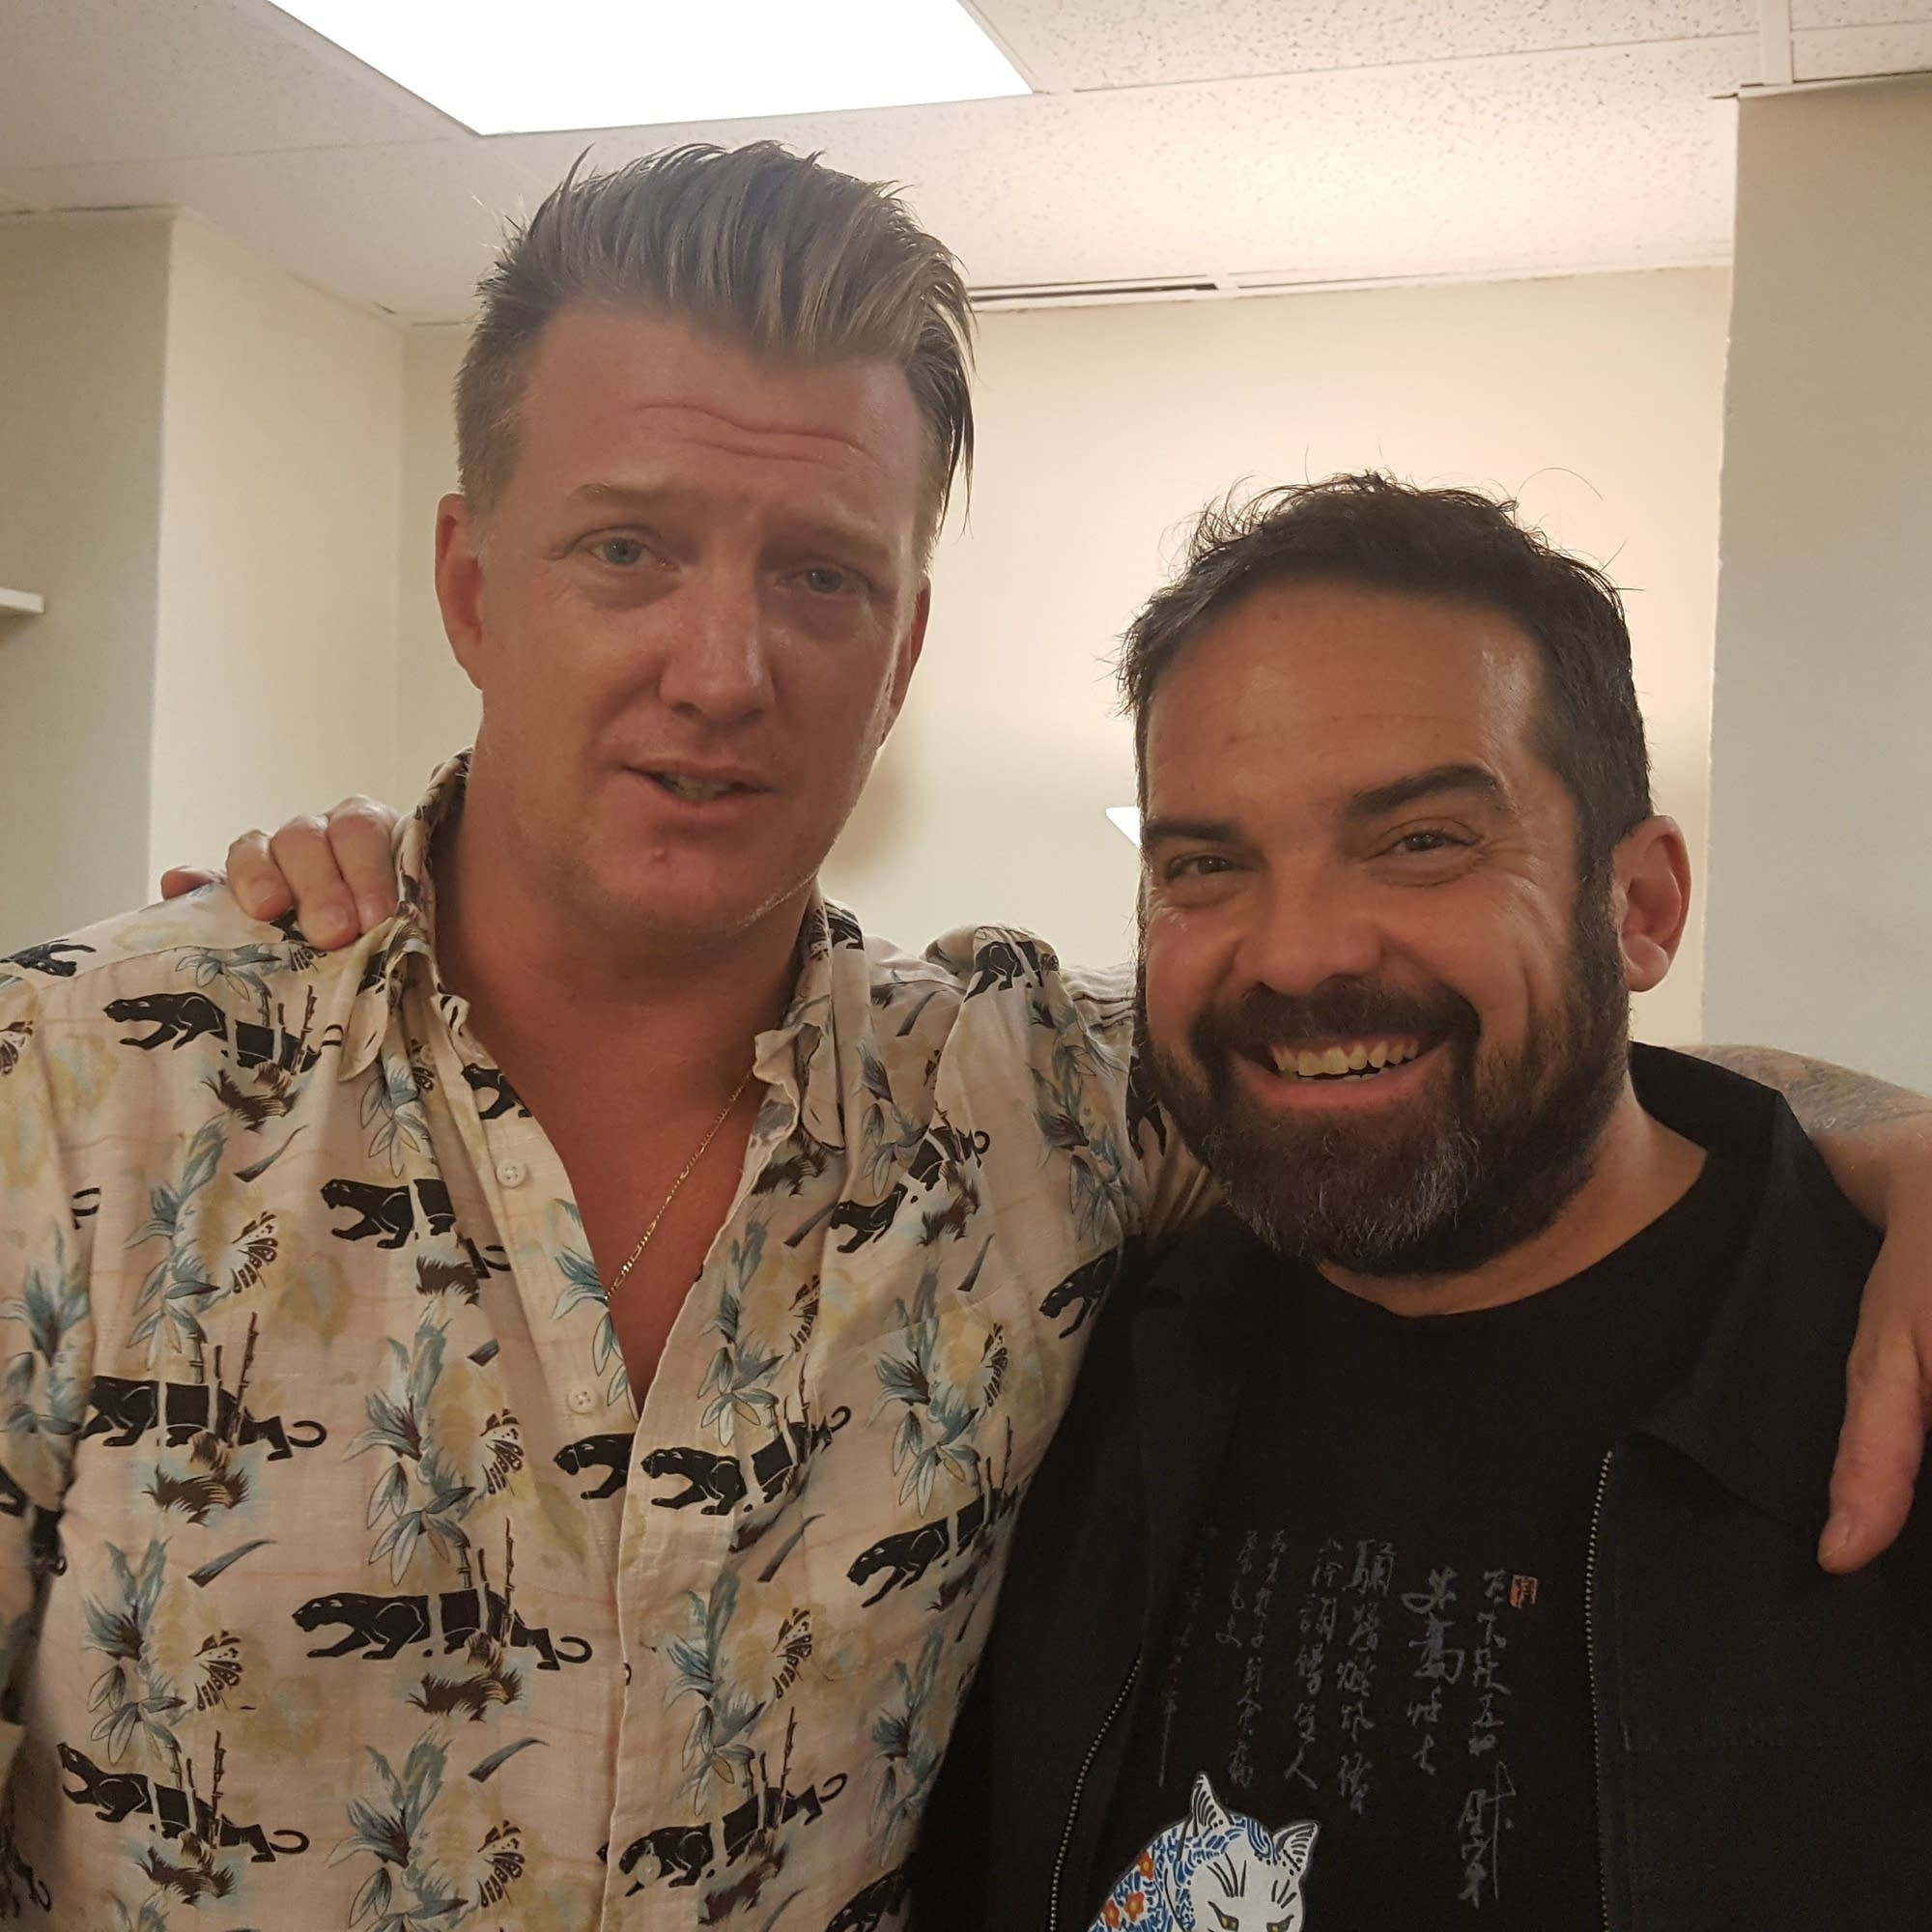 Josh Homme of Queens of the Stone Age with Brian Oake